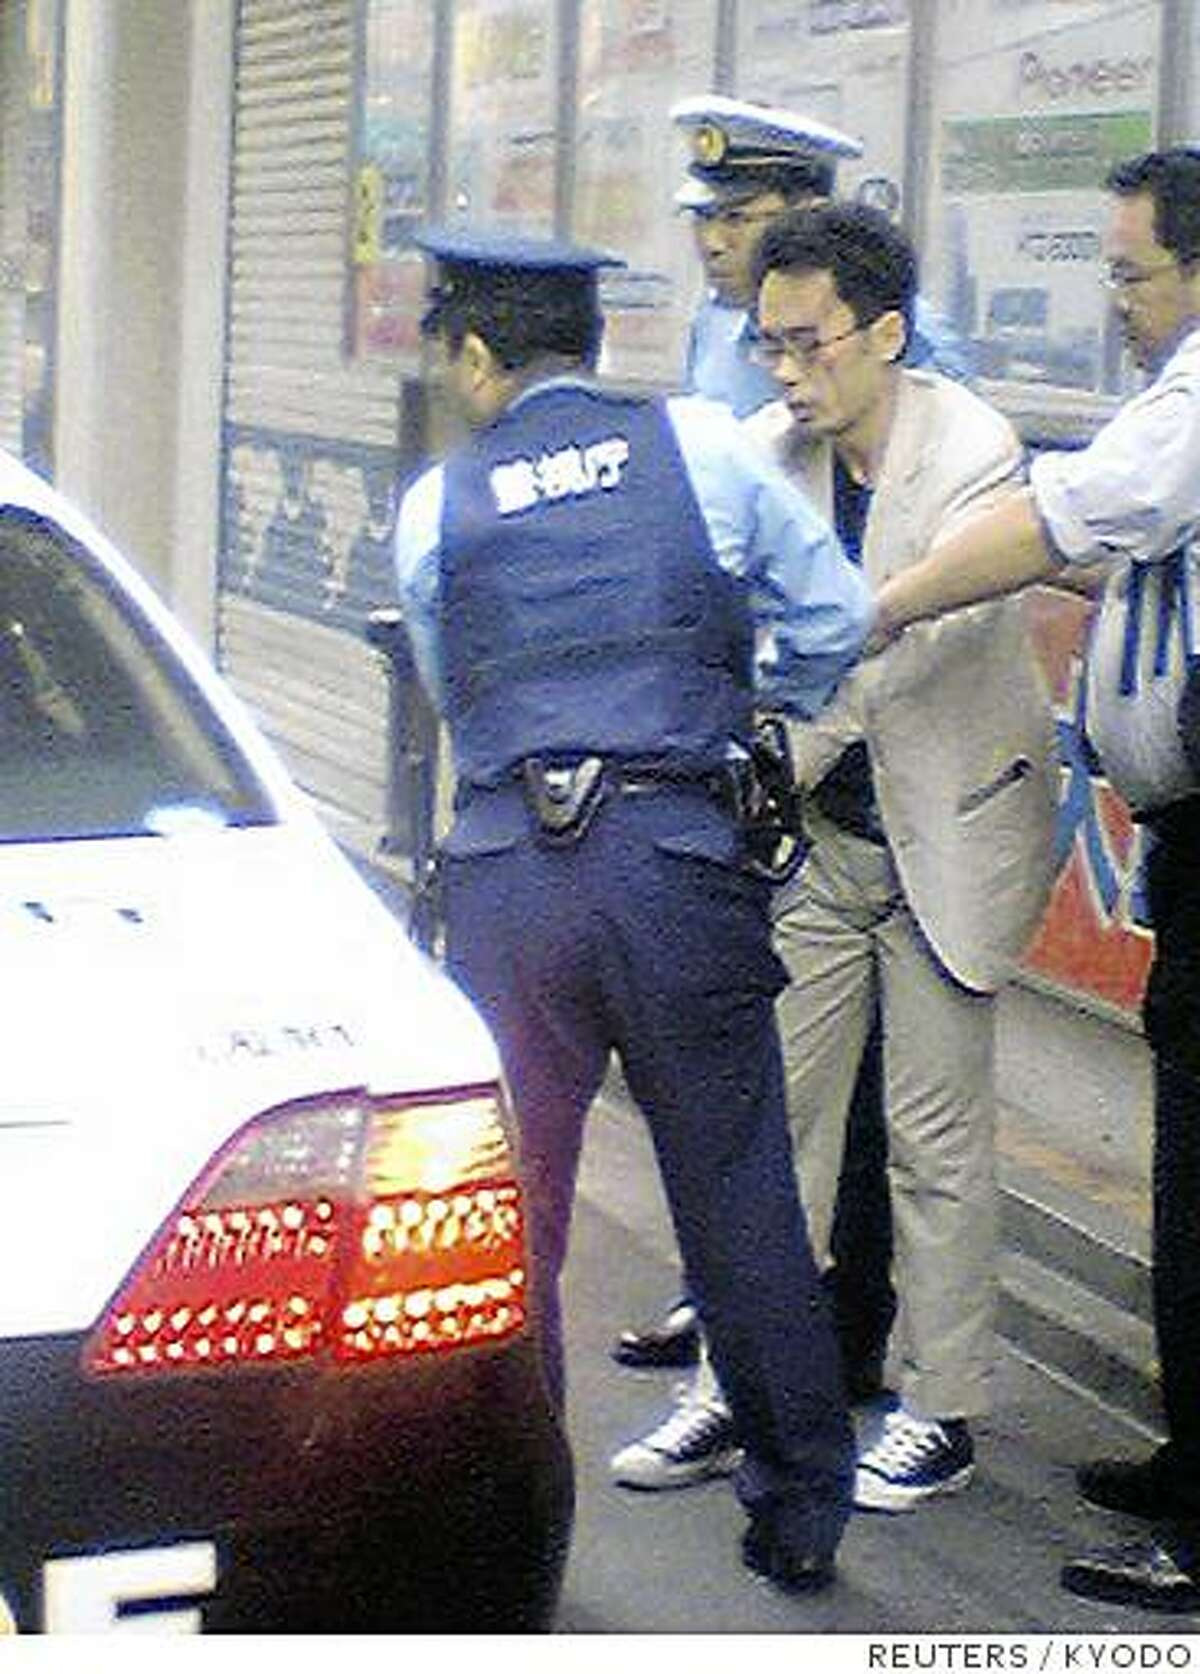 Tomohiro Kato (C), who killed seven people and wounding a dozen others, is detained by police officers at Tokyo's Akihabara district June 8, 2008 in this photo taken by an anonymous pedestrian. Kato, who said he was tired of life went on a stabbing rampage on Sunday in a crowded Tokyo shopping street, knifing passers-by in Akihabara, known of its discount electronics and maid cafes. Picture taken June 8, 2008. QUALITY FROM SOURCE REUTERS/Kyodo (JAPAN). JAPAN OUT. NO COMMERCIAL OR EDITORIAL SALES IN JAPAN.